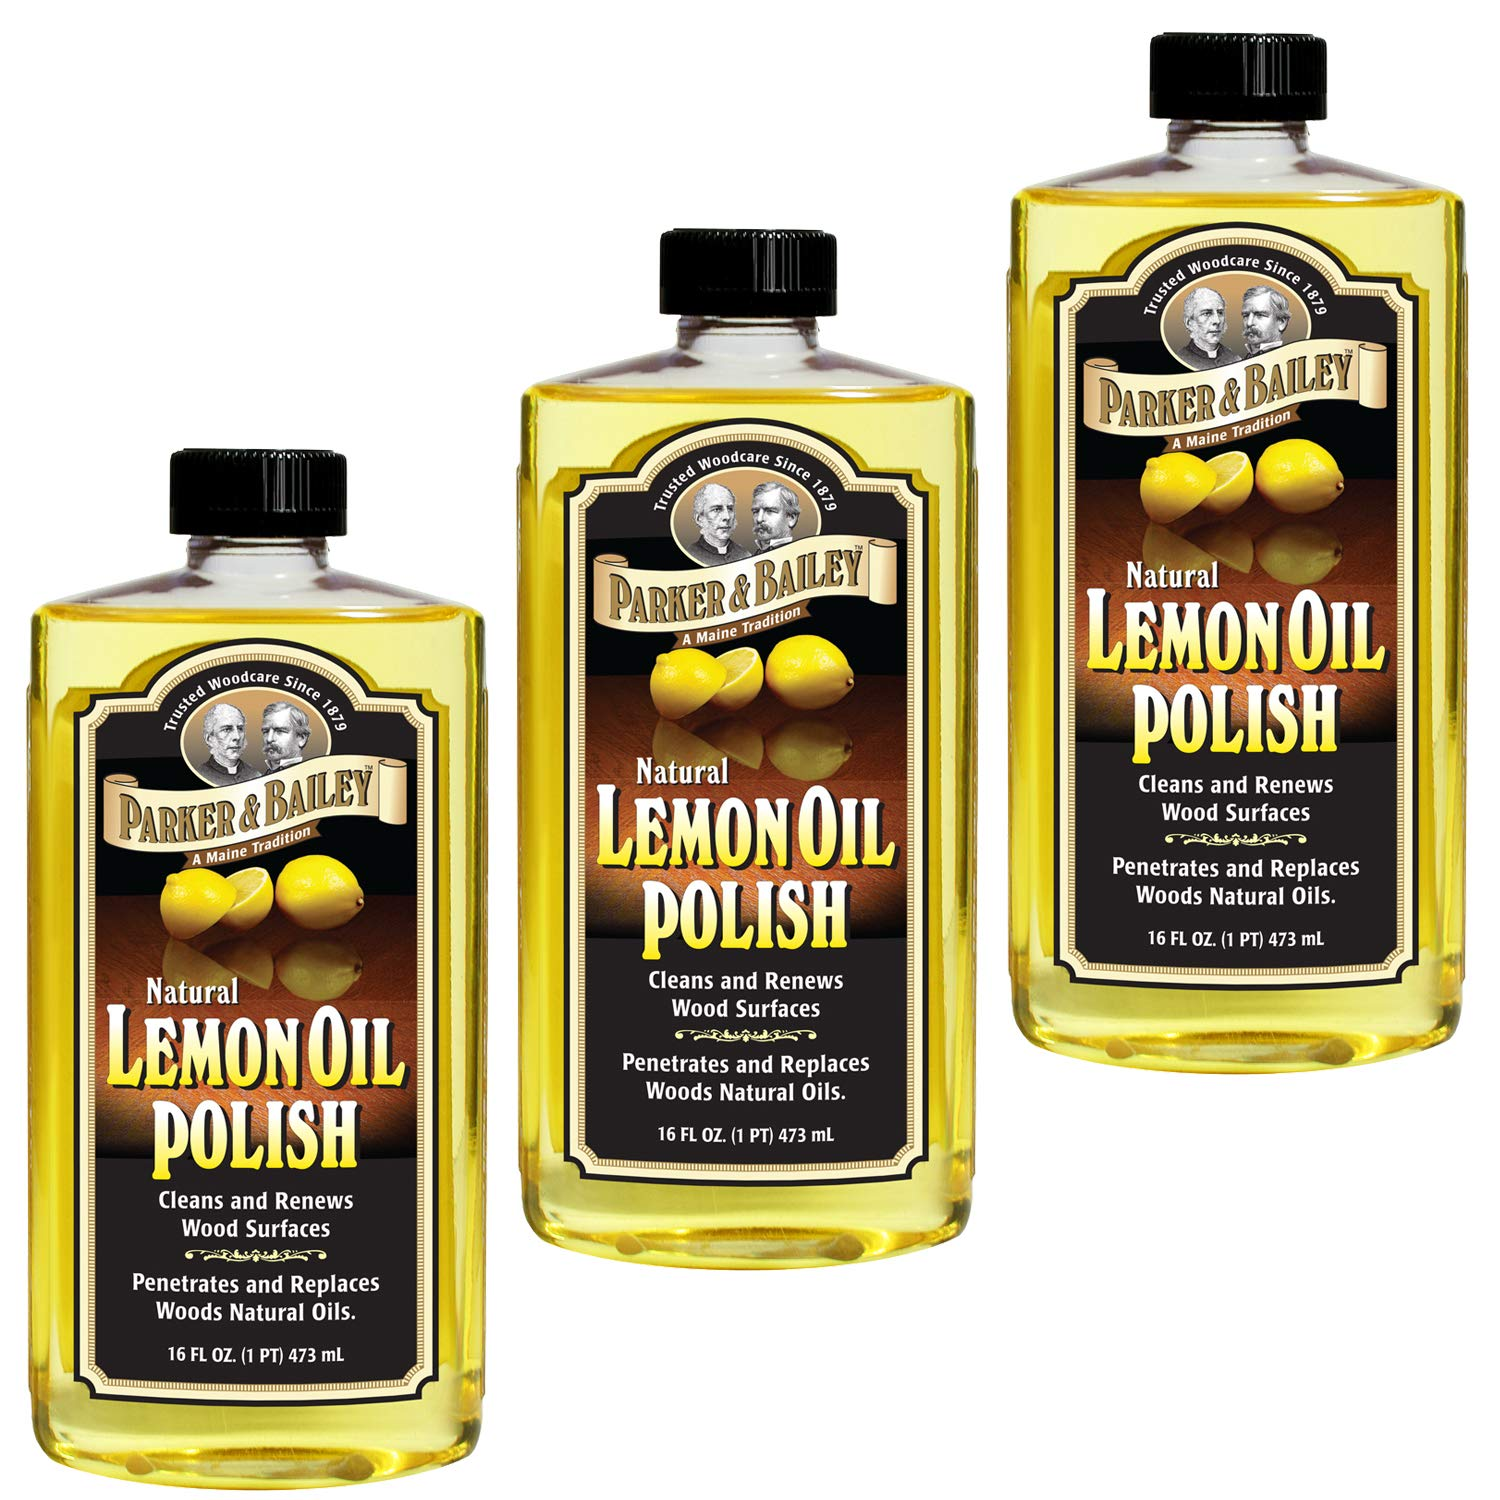 Parker & Bailey Natural Lemon Oil Polish 16oz - Pack of 3